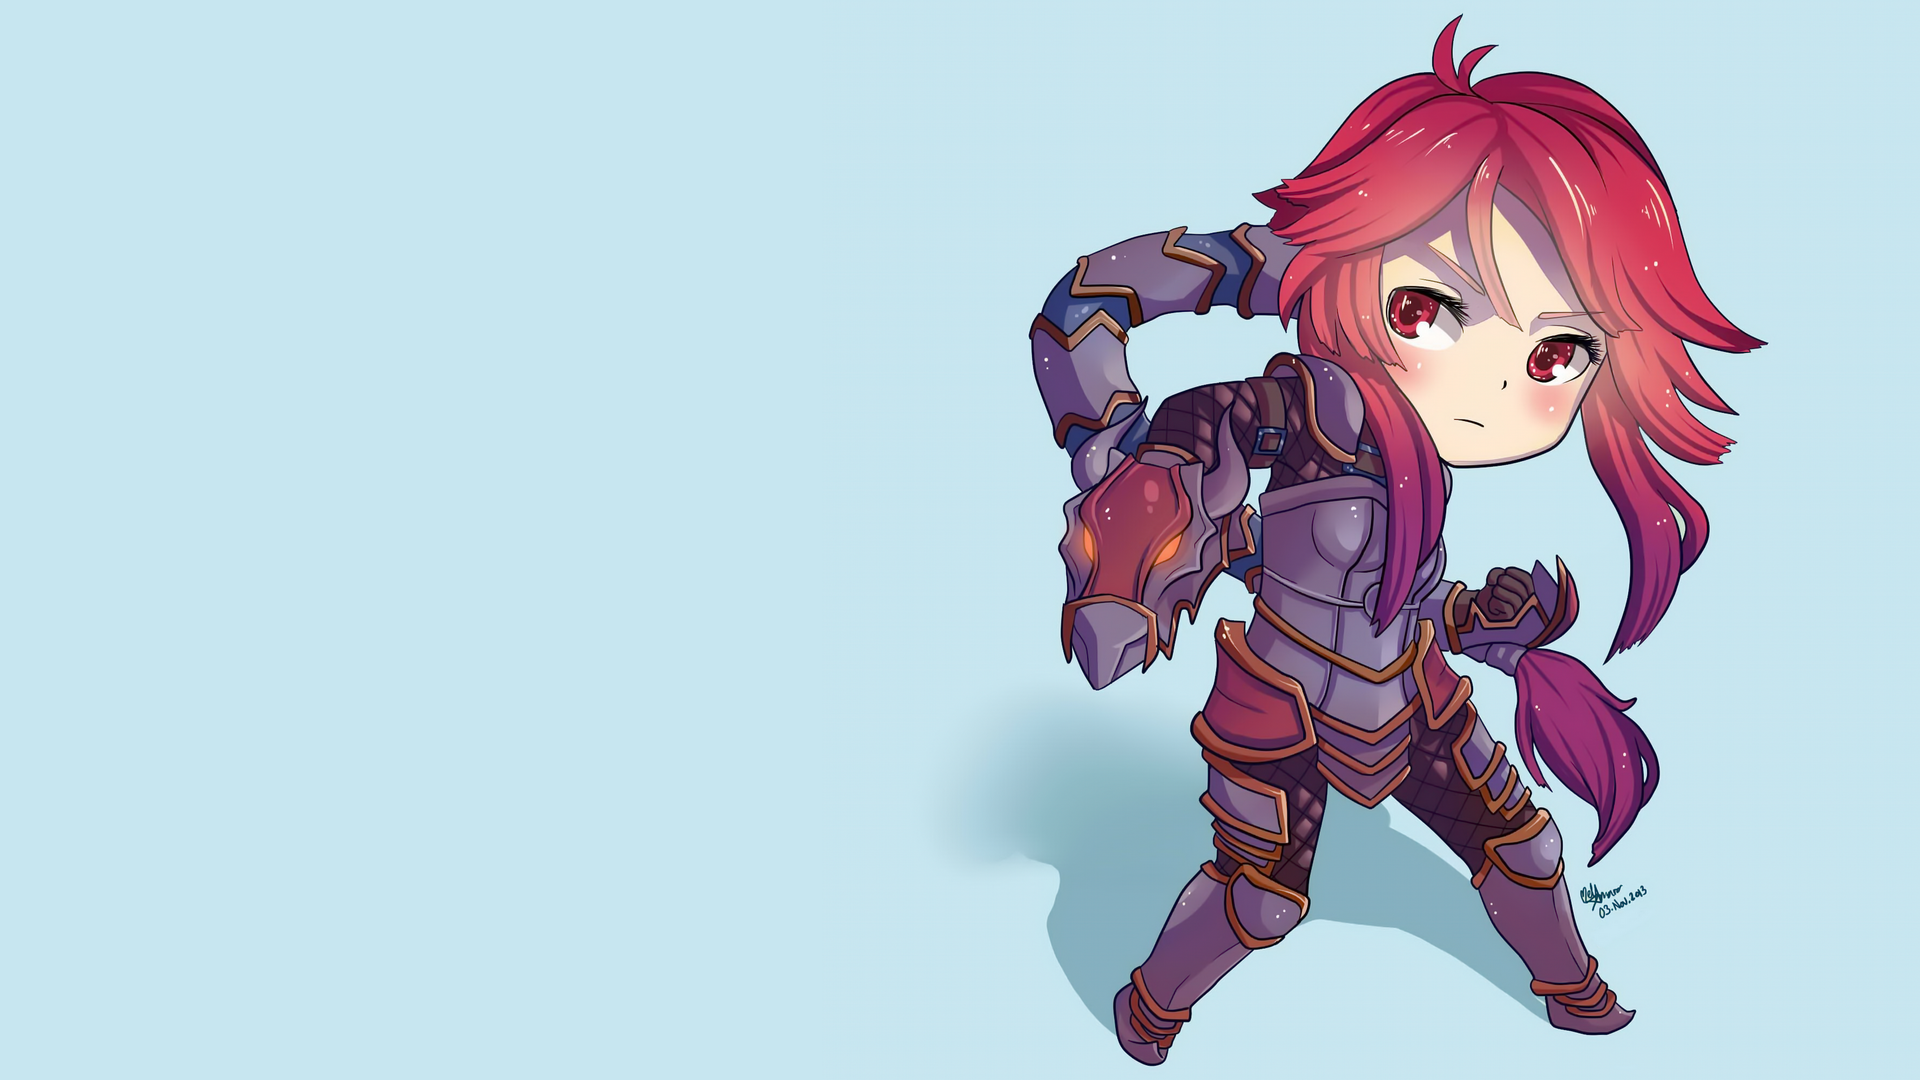 Chibi Shyvana wallpaper